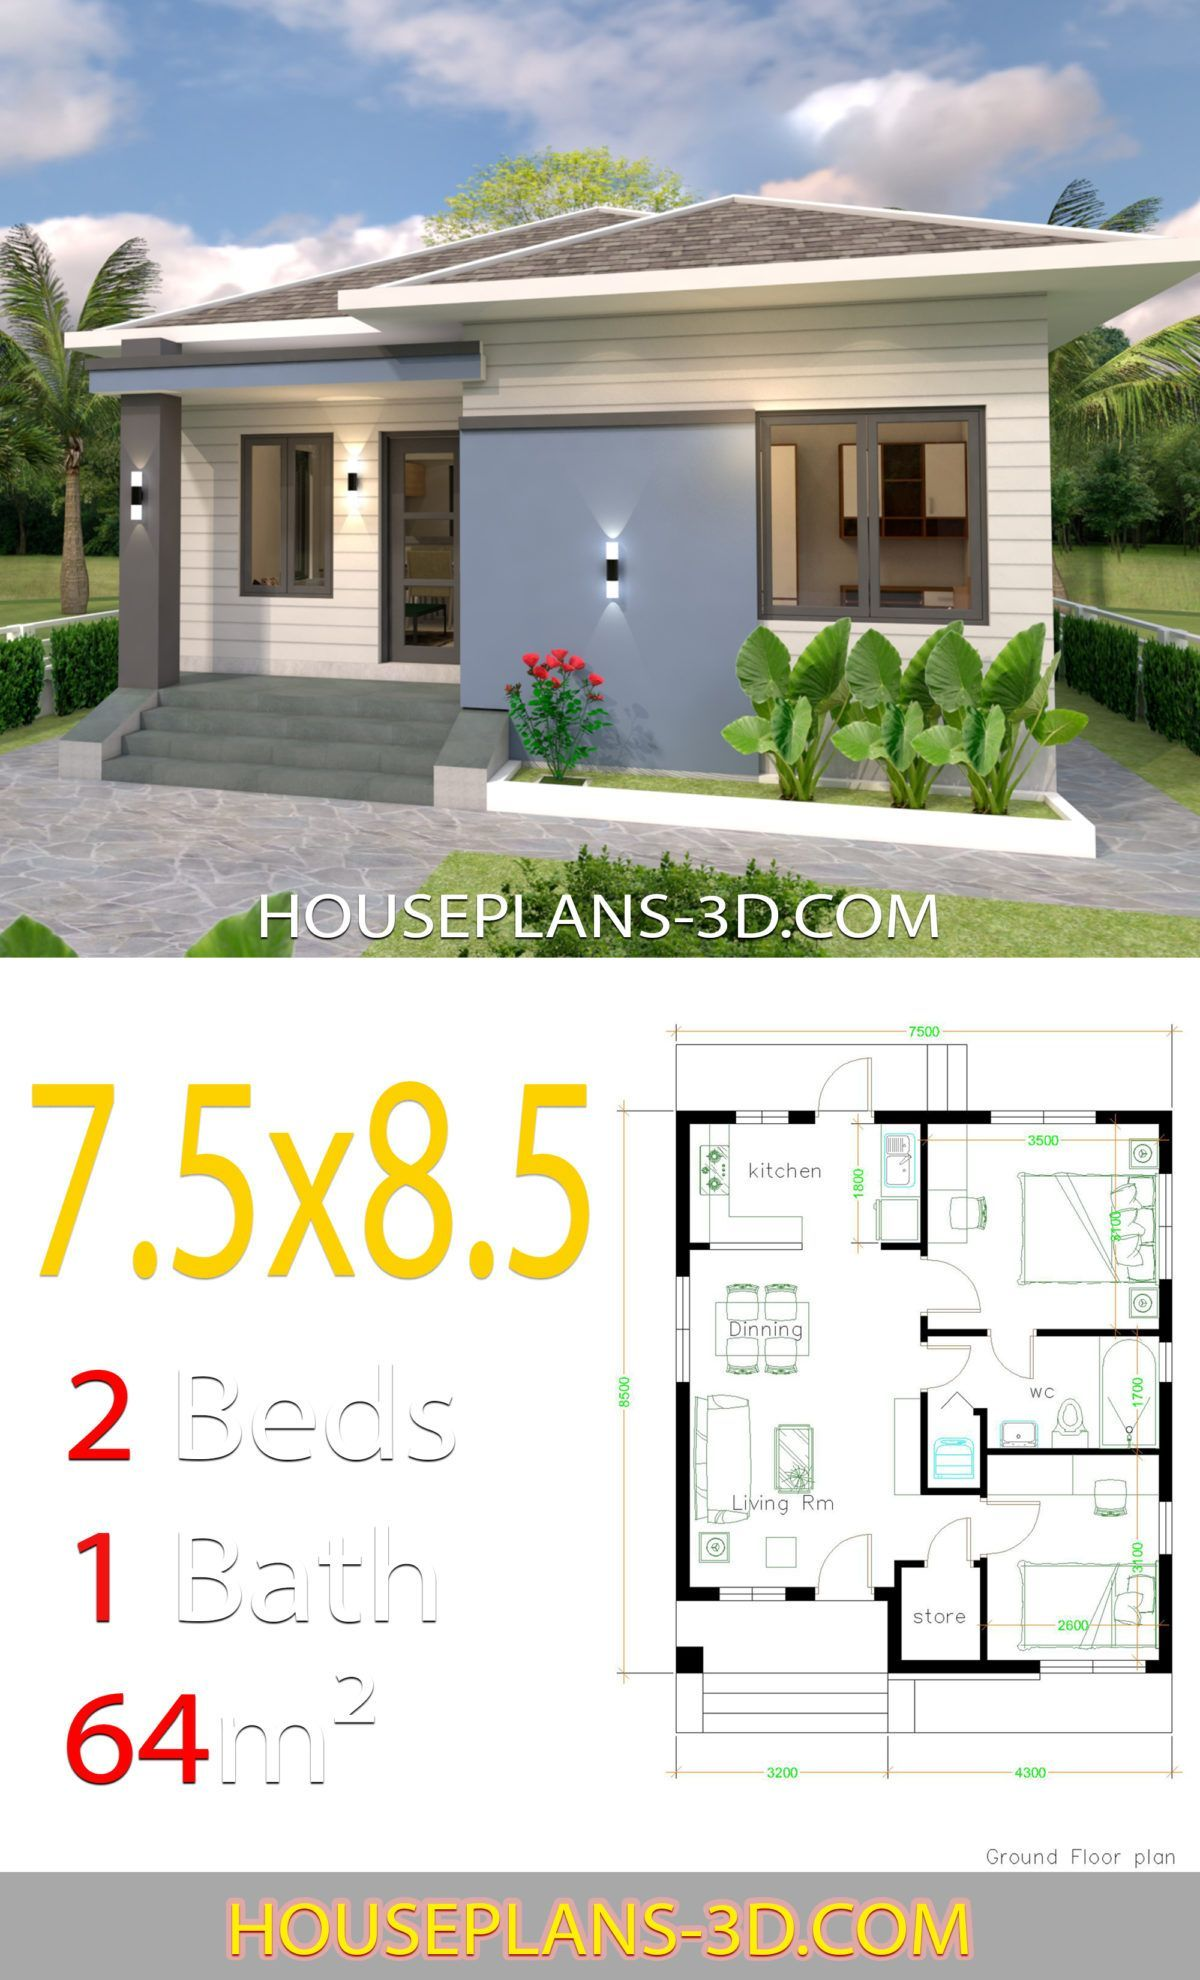 House Design 7 5x8 5 With 2 Bedrooms In 2019 Bedroom House Small House Plans Tiny House Plans House Plans